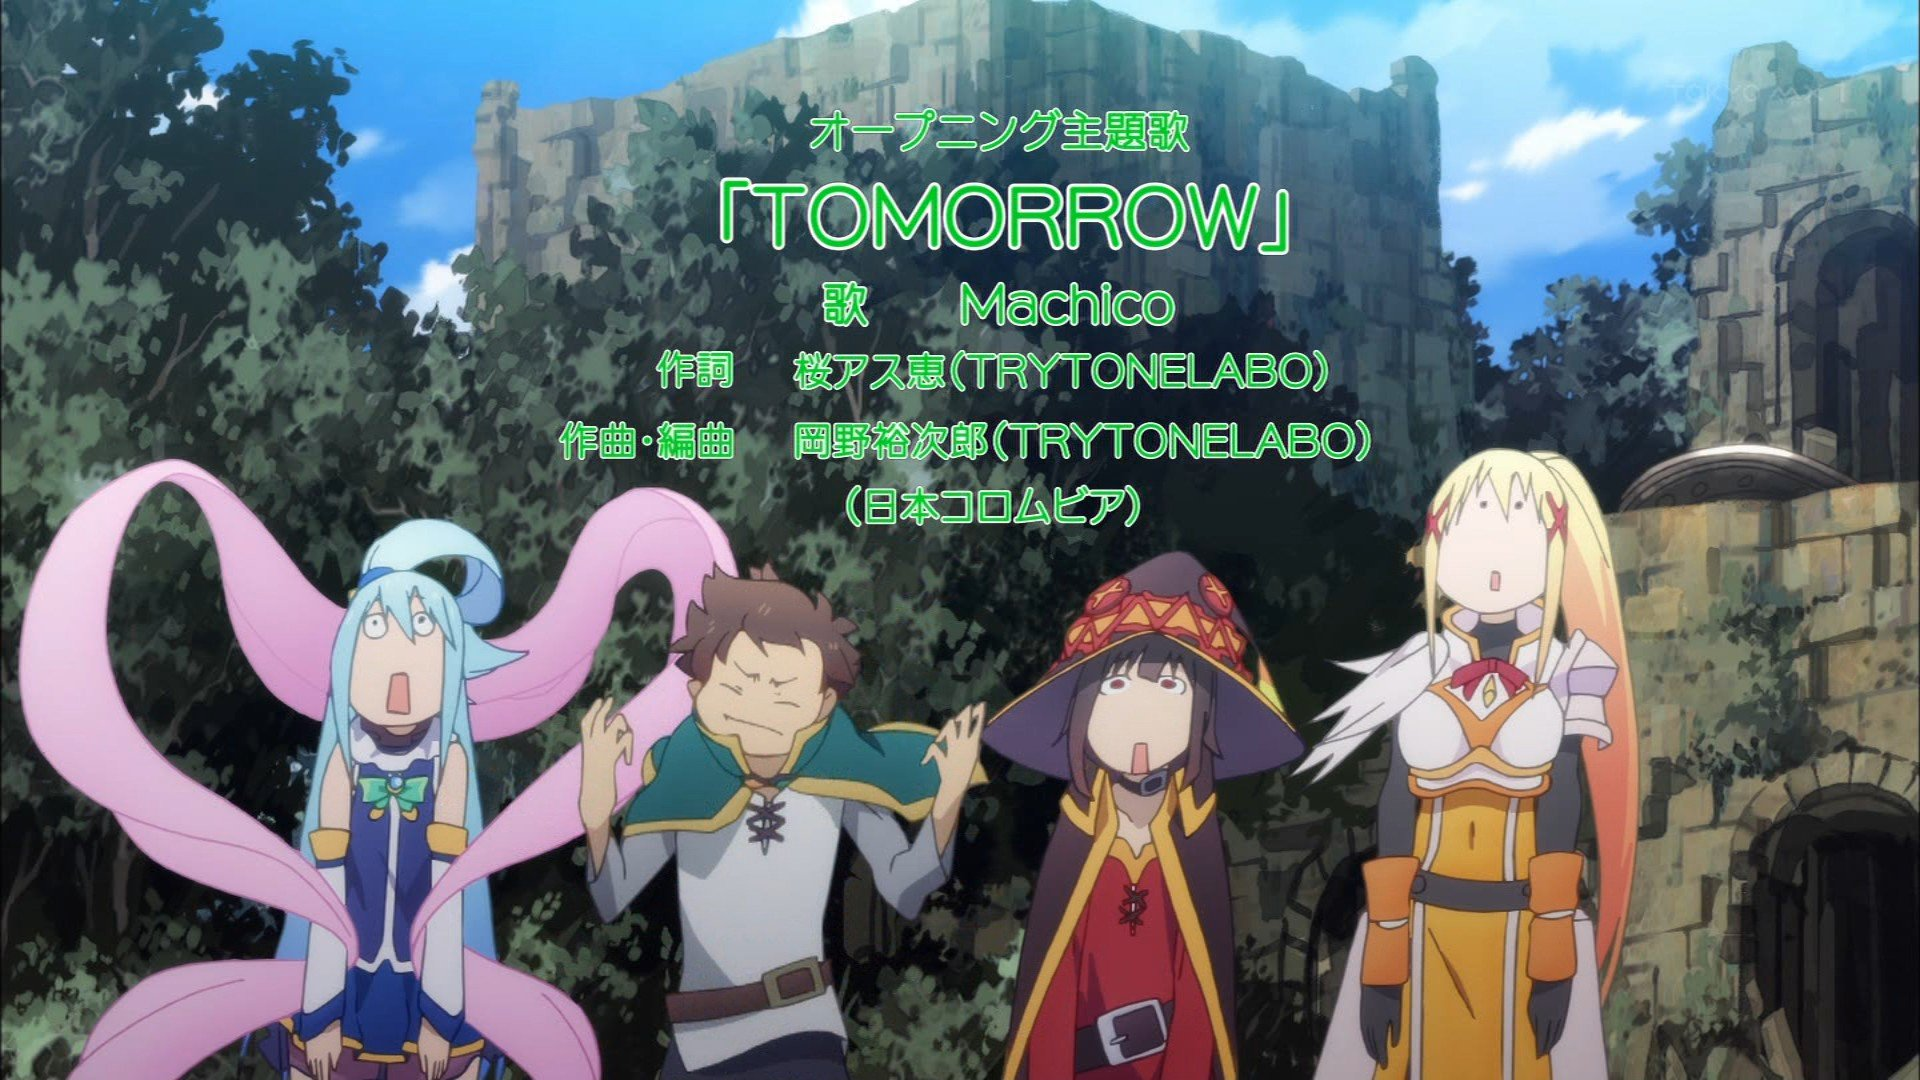 オープニング主題歌 「TOMORROW」 歌 Machico #konosuba #tokyomx https://t.co/3PuIZrNHJe